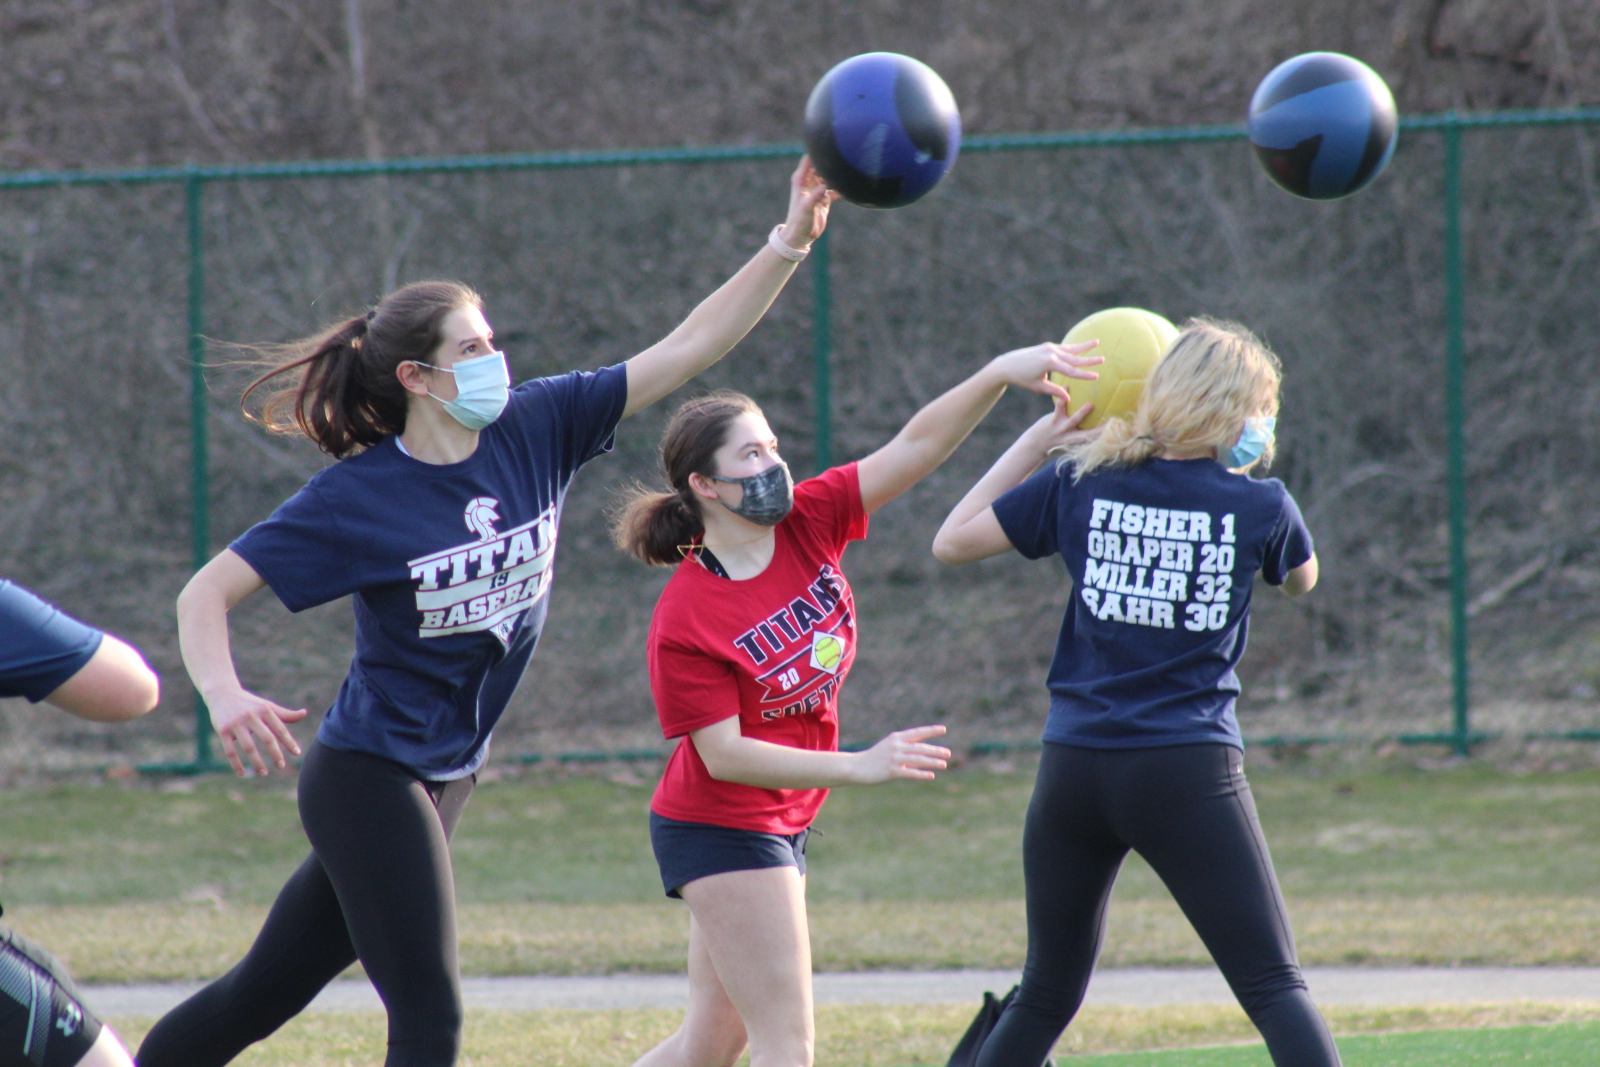 Spring Is In The Air – SA Teams Take To The Fields, Courts, Track, Weightroom To Get Ready